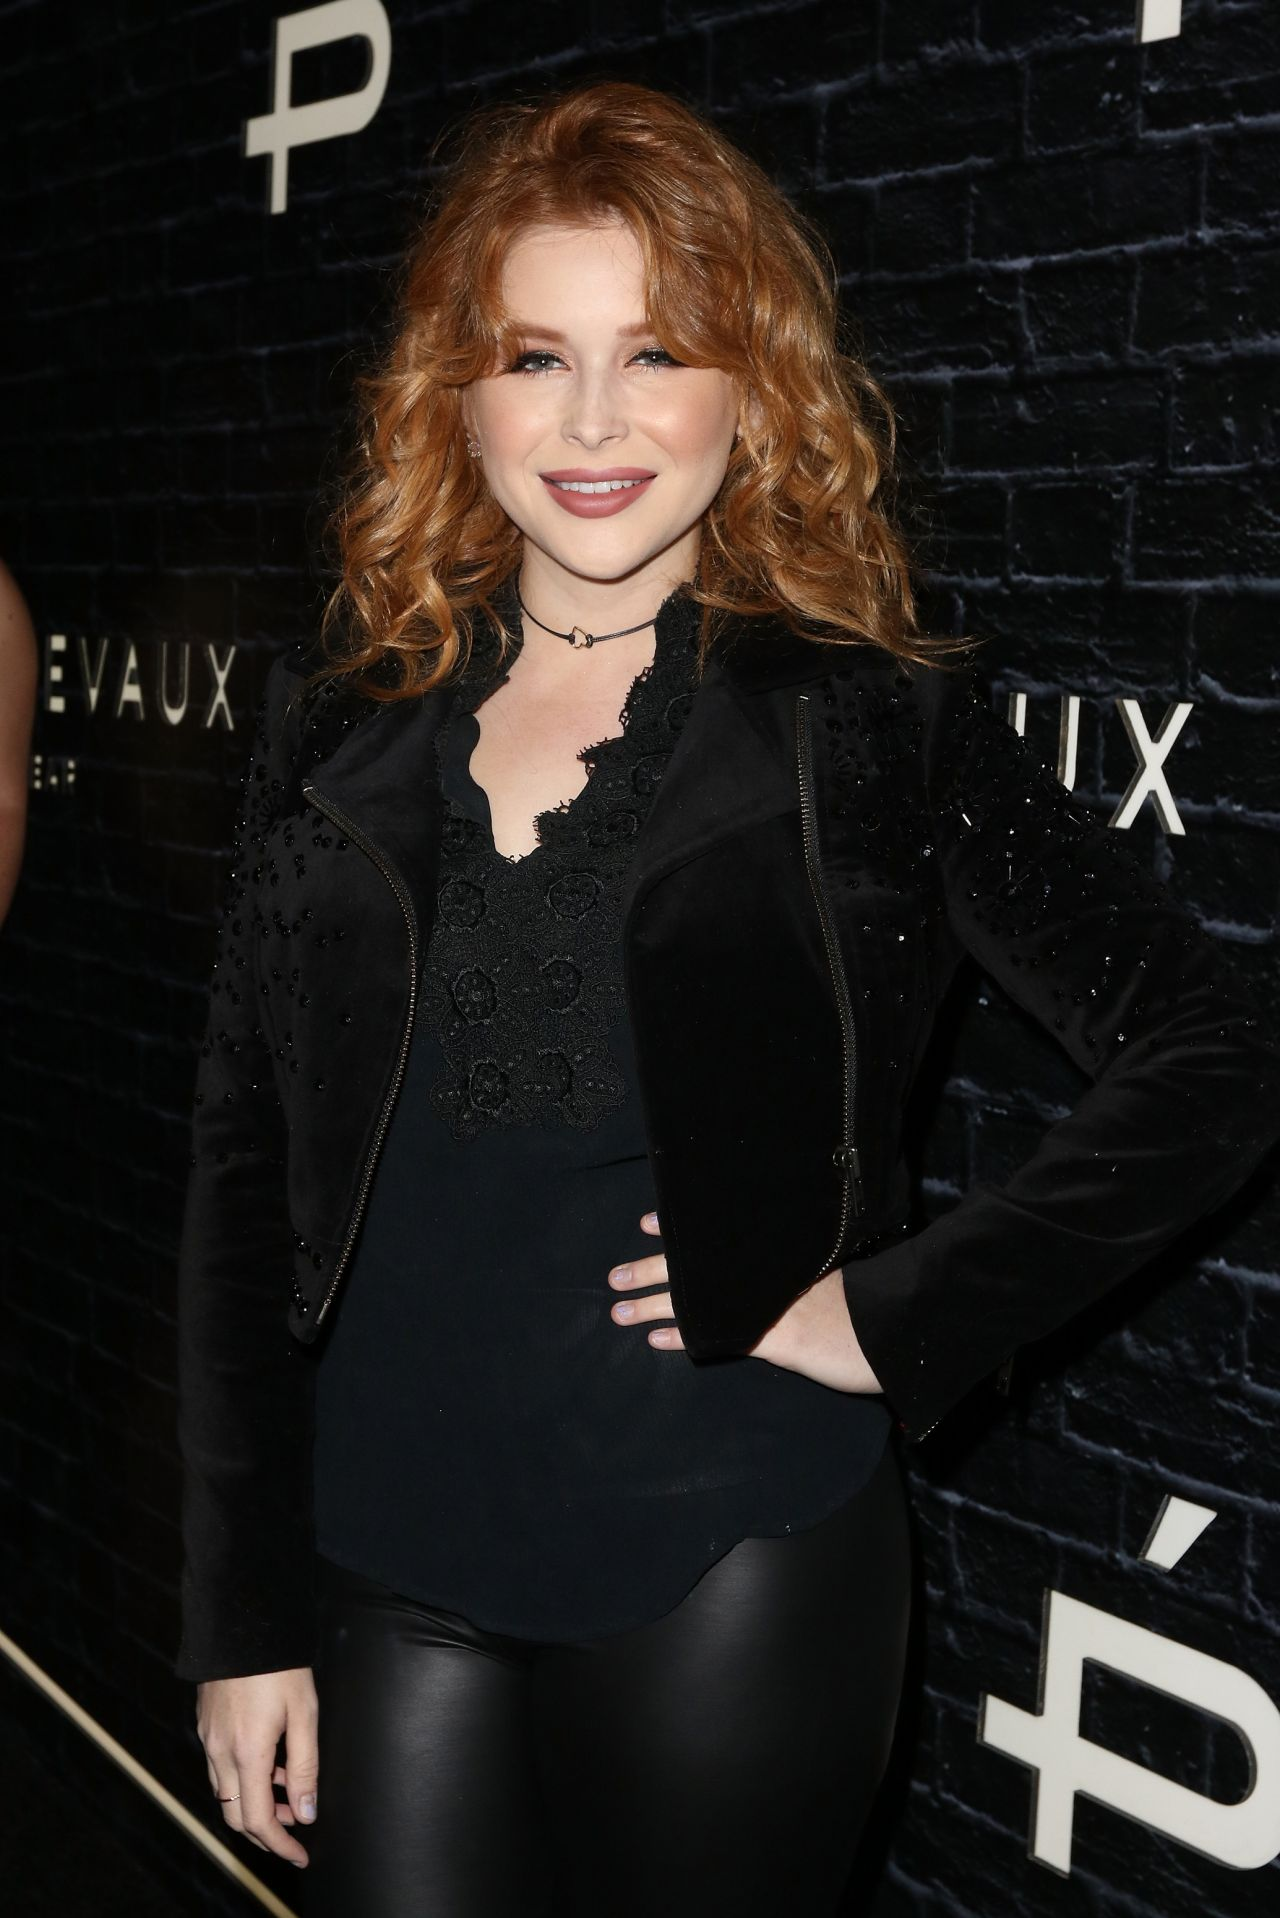 a45b7c5477dc Renee Olstead – Prive Revaux Eyewear Launch Event in West .